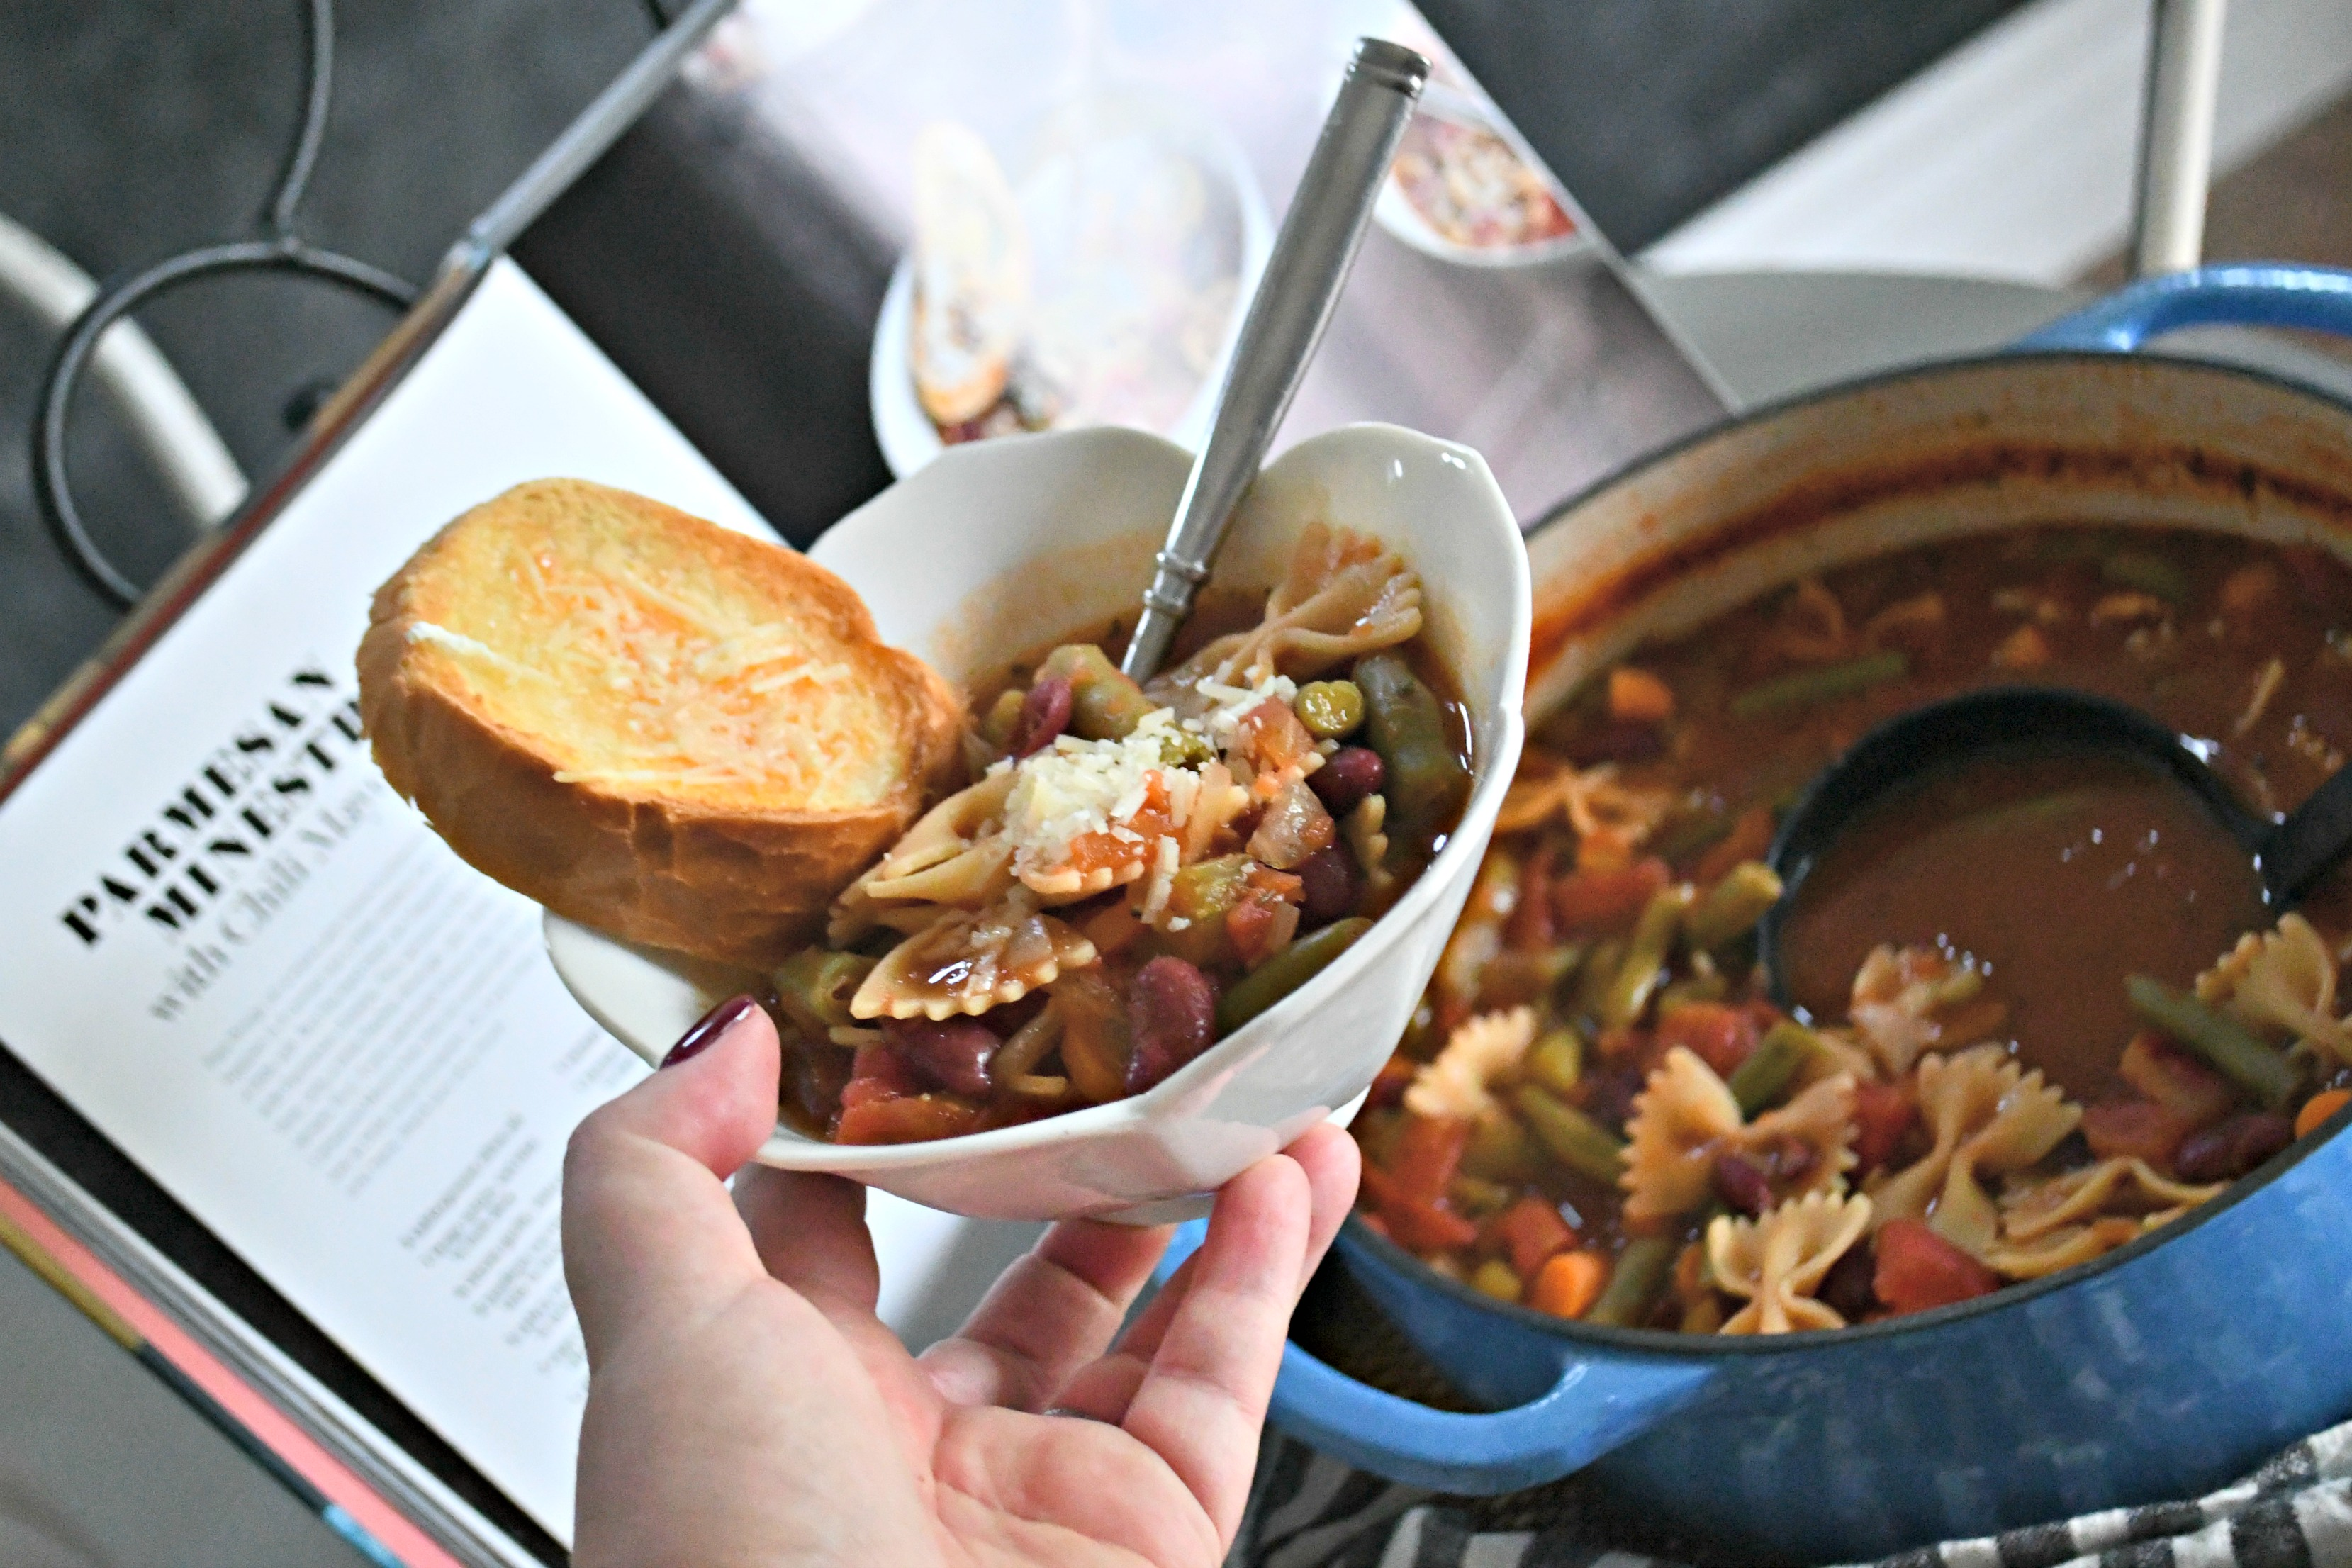 Cravings: Hungry for More Cookbook by Chrissy Teigen – minestrone served in a bowl with bread